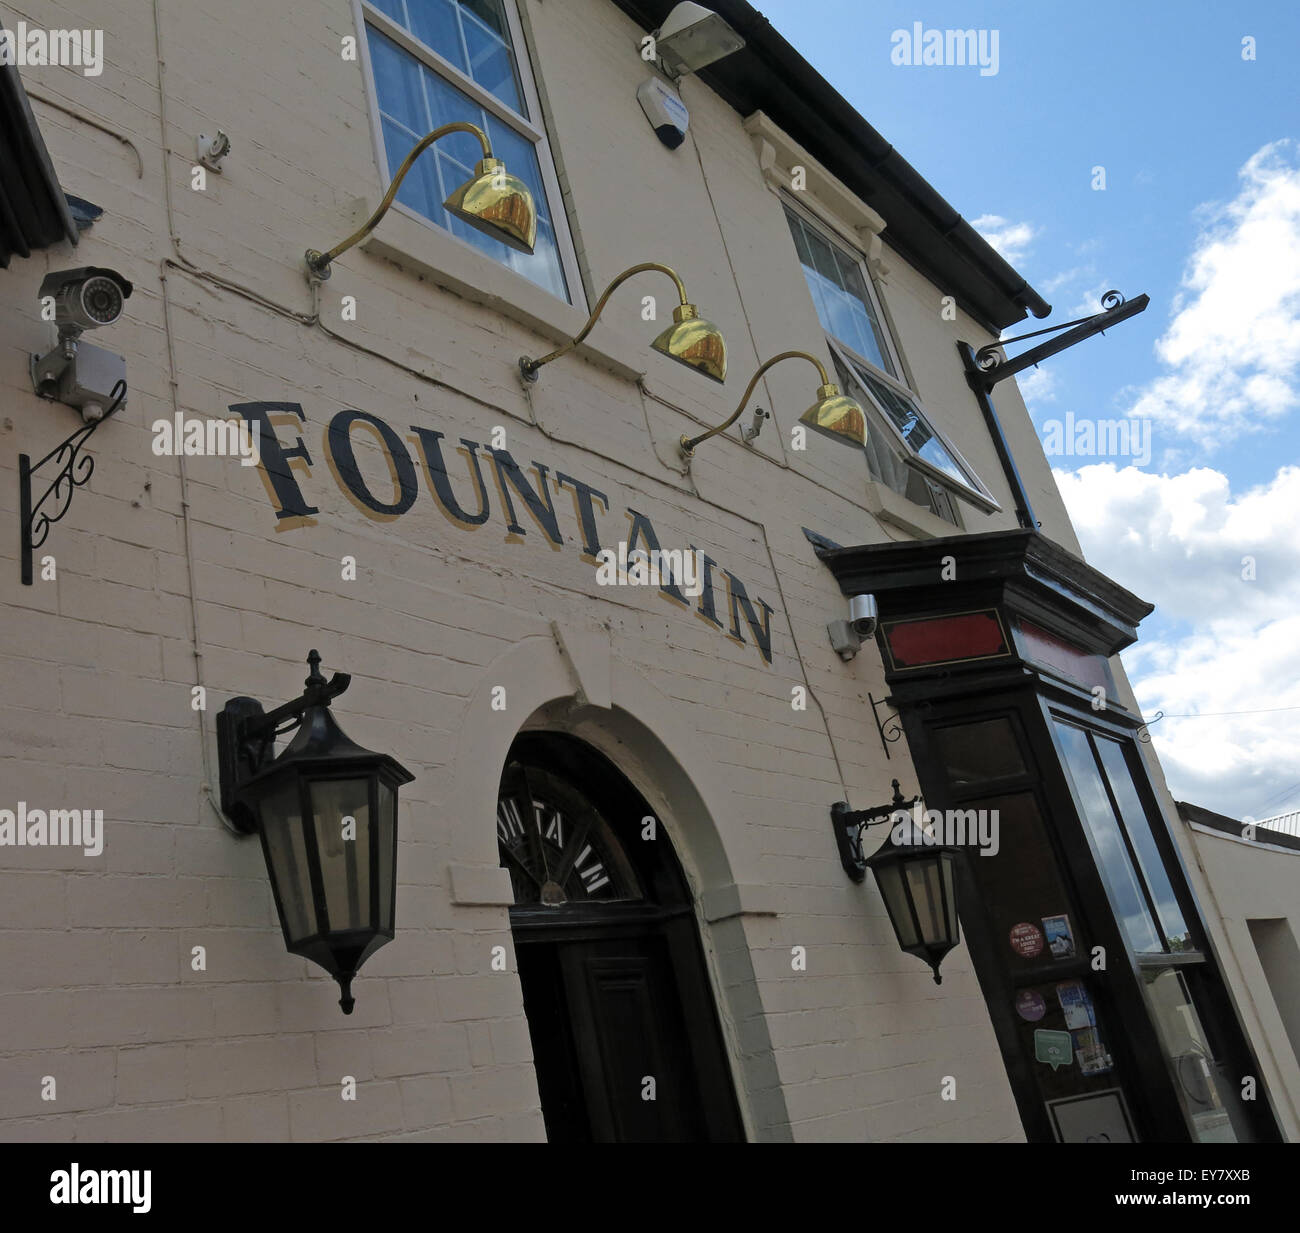 The Fountain Tavern,Backyard Brewhouse, 49 Lower Forster St, Walsall, West Midlands WS1 1XB - Stock Image